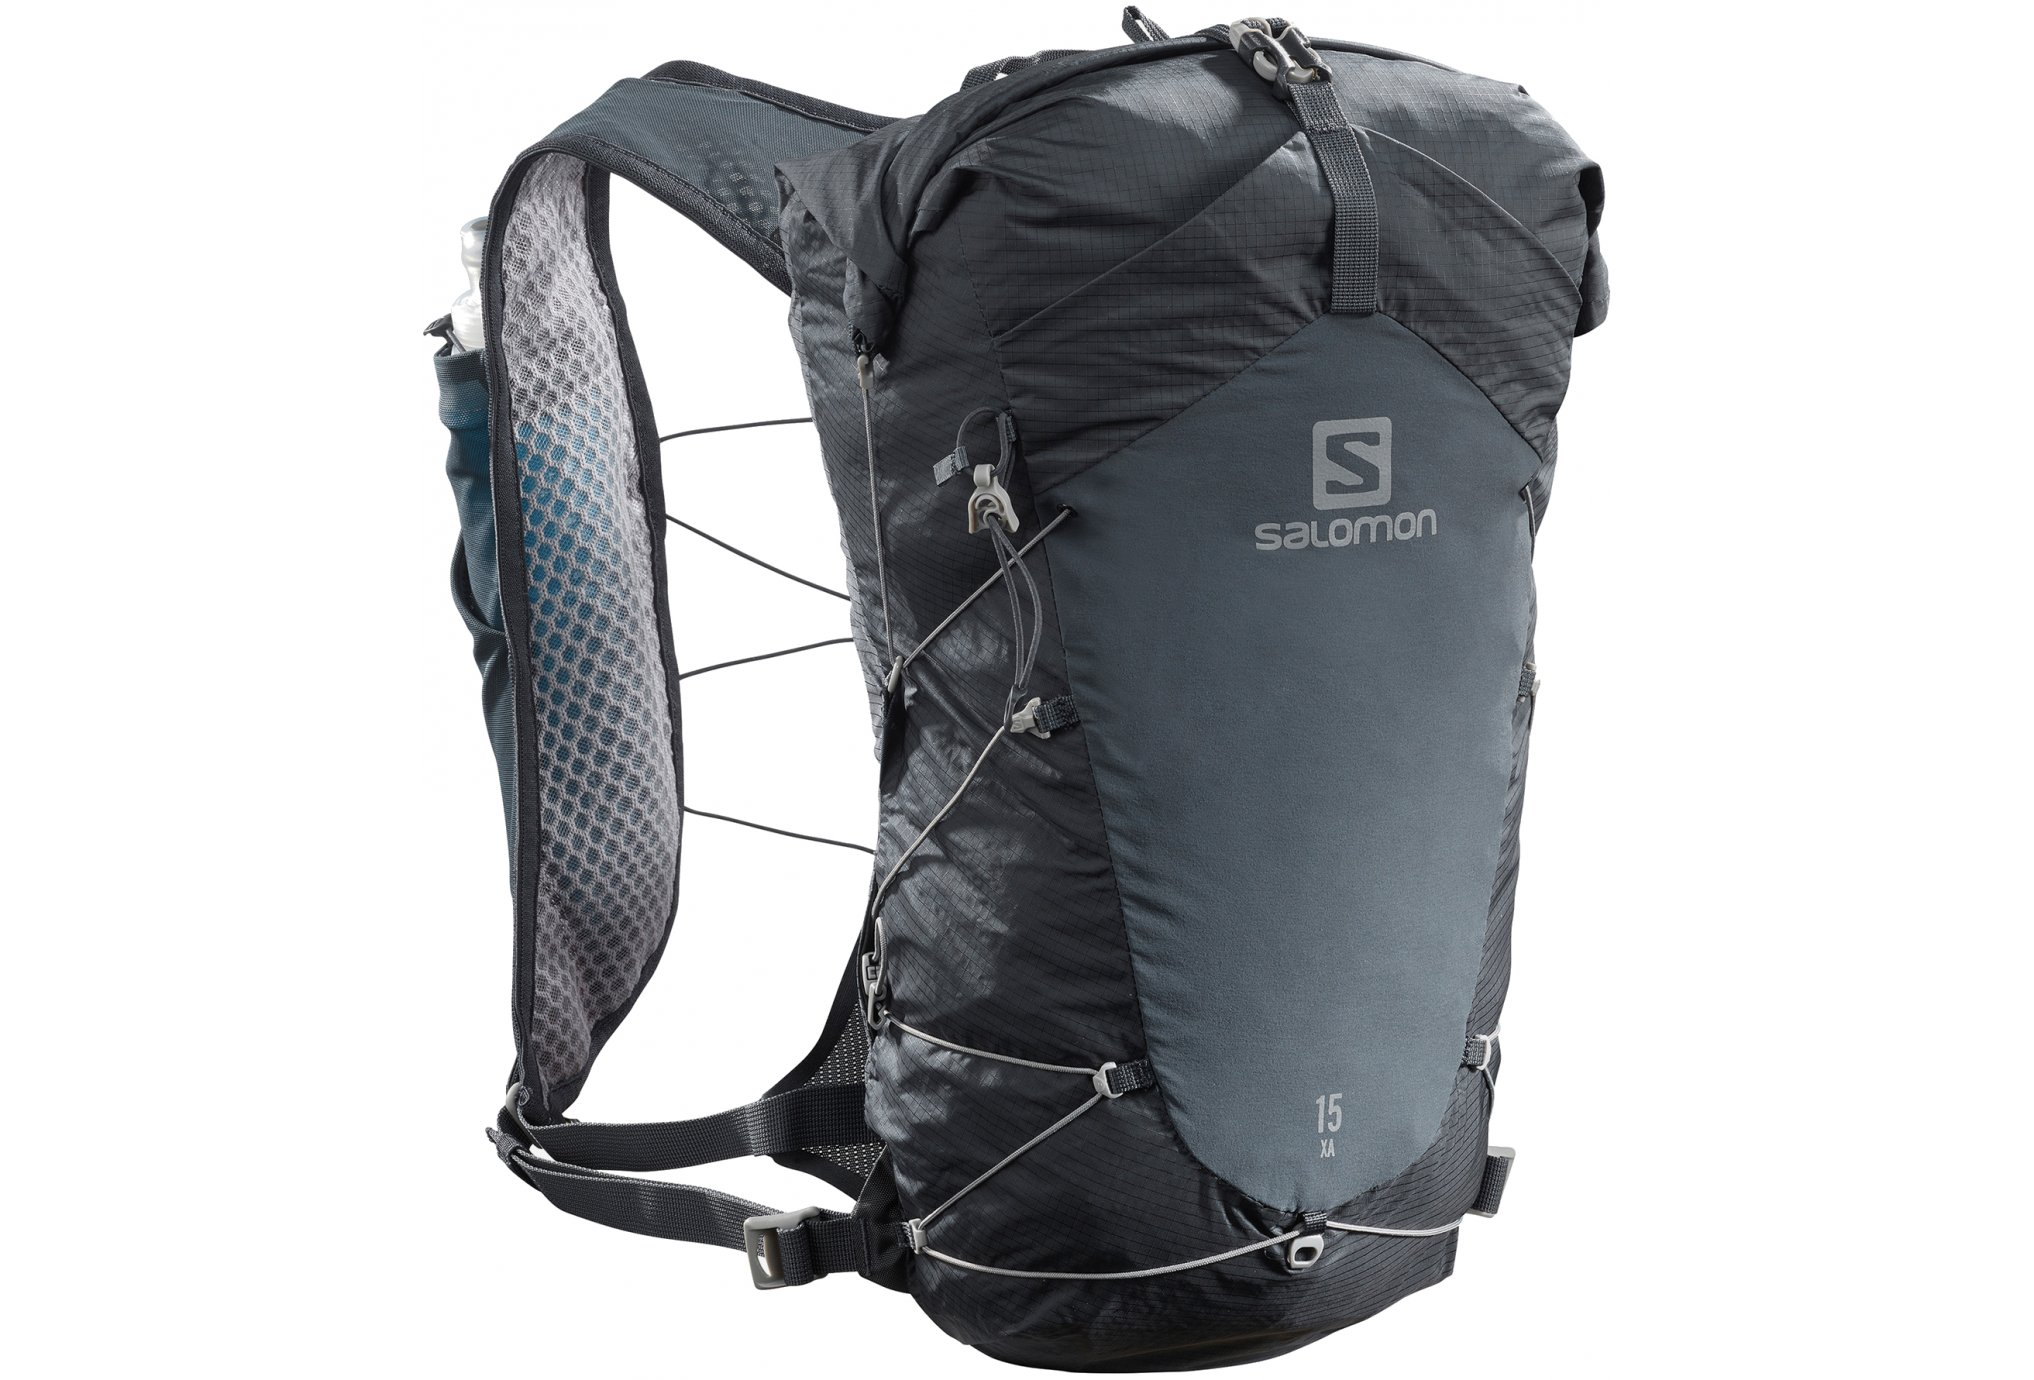 Salomon XA 15 SET Sac hydratation / Gourde